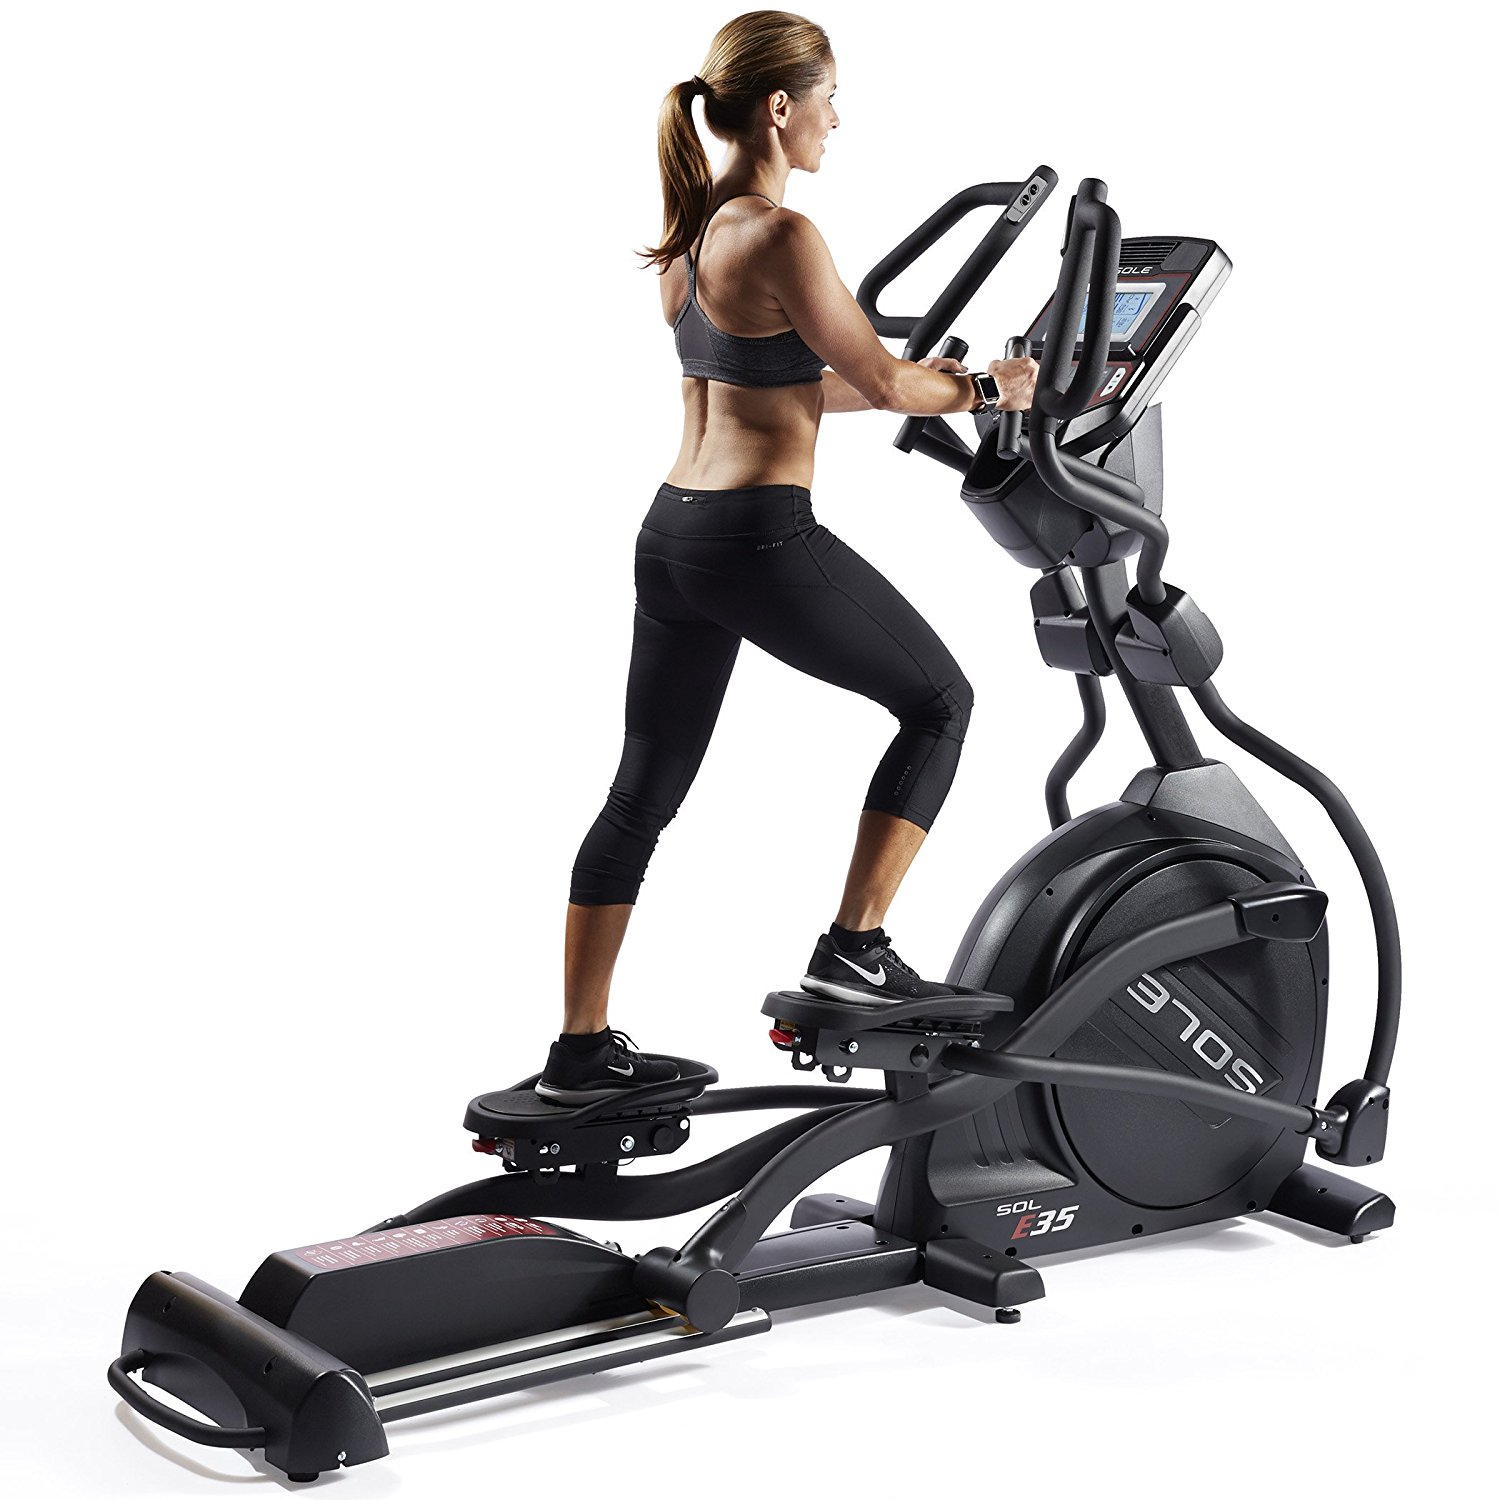 A Closer Look at the Best Home Gym Elliptical thumbnail